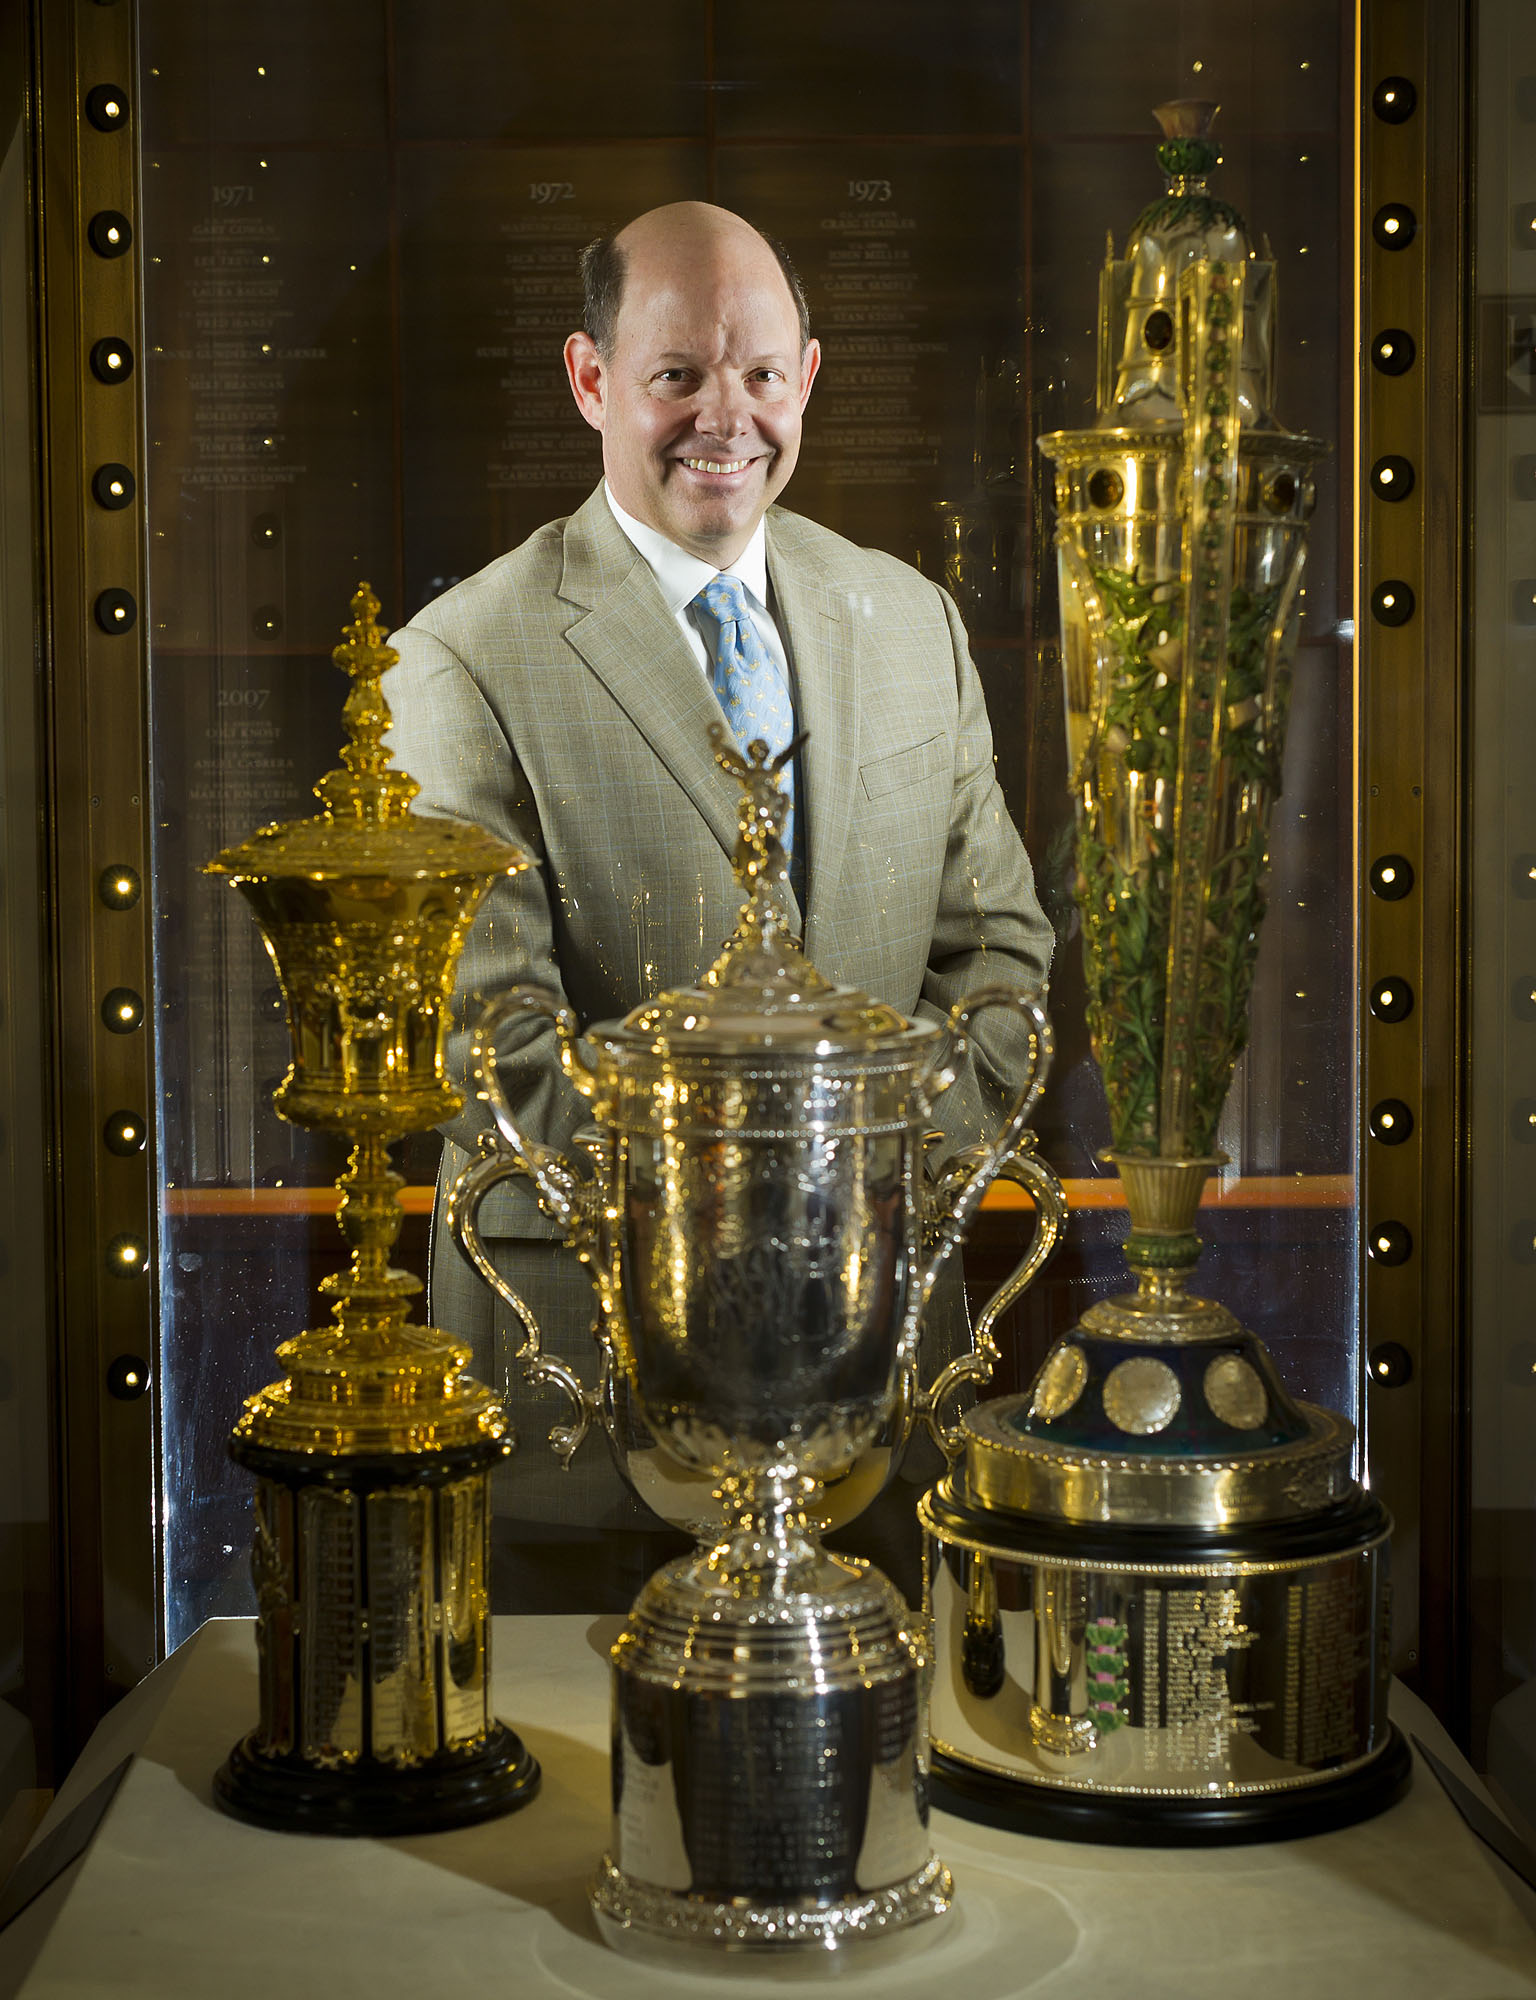 Mike Davis with USGA Trophies inside the Hall of Champions on the campus of the USGA (United State Golf Association).  Photographed for Meto Golf Association